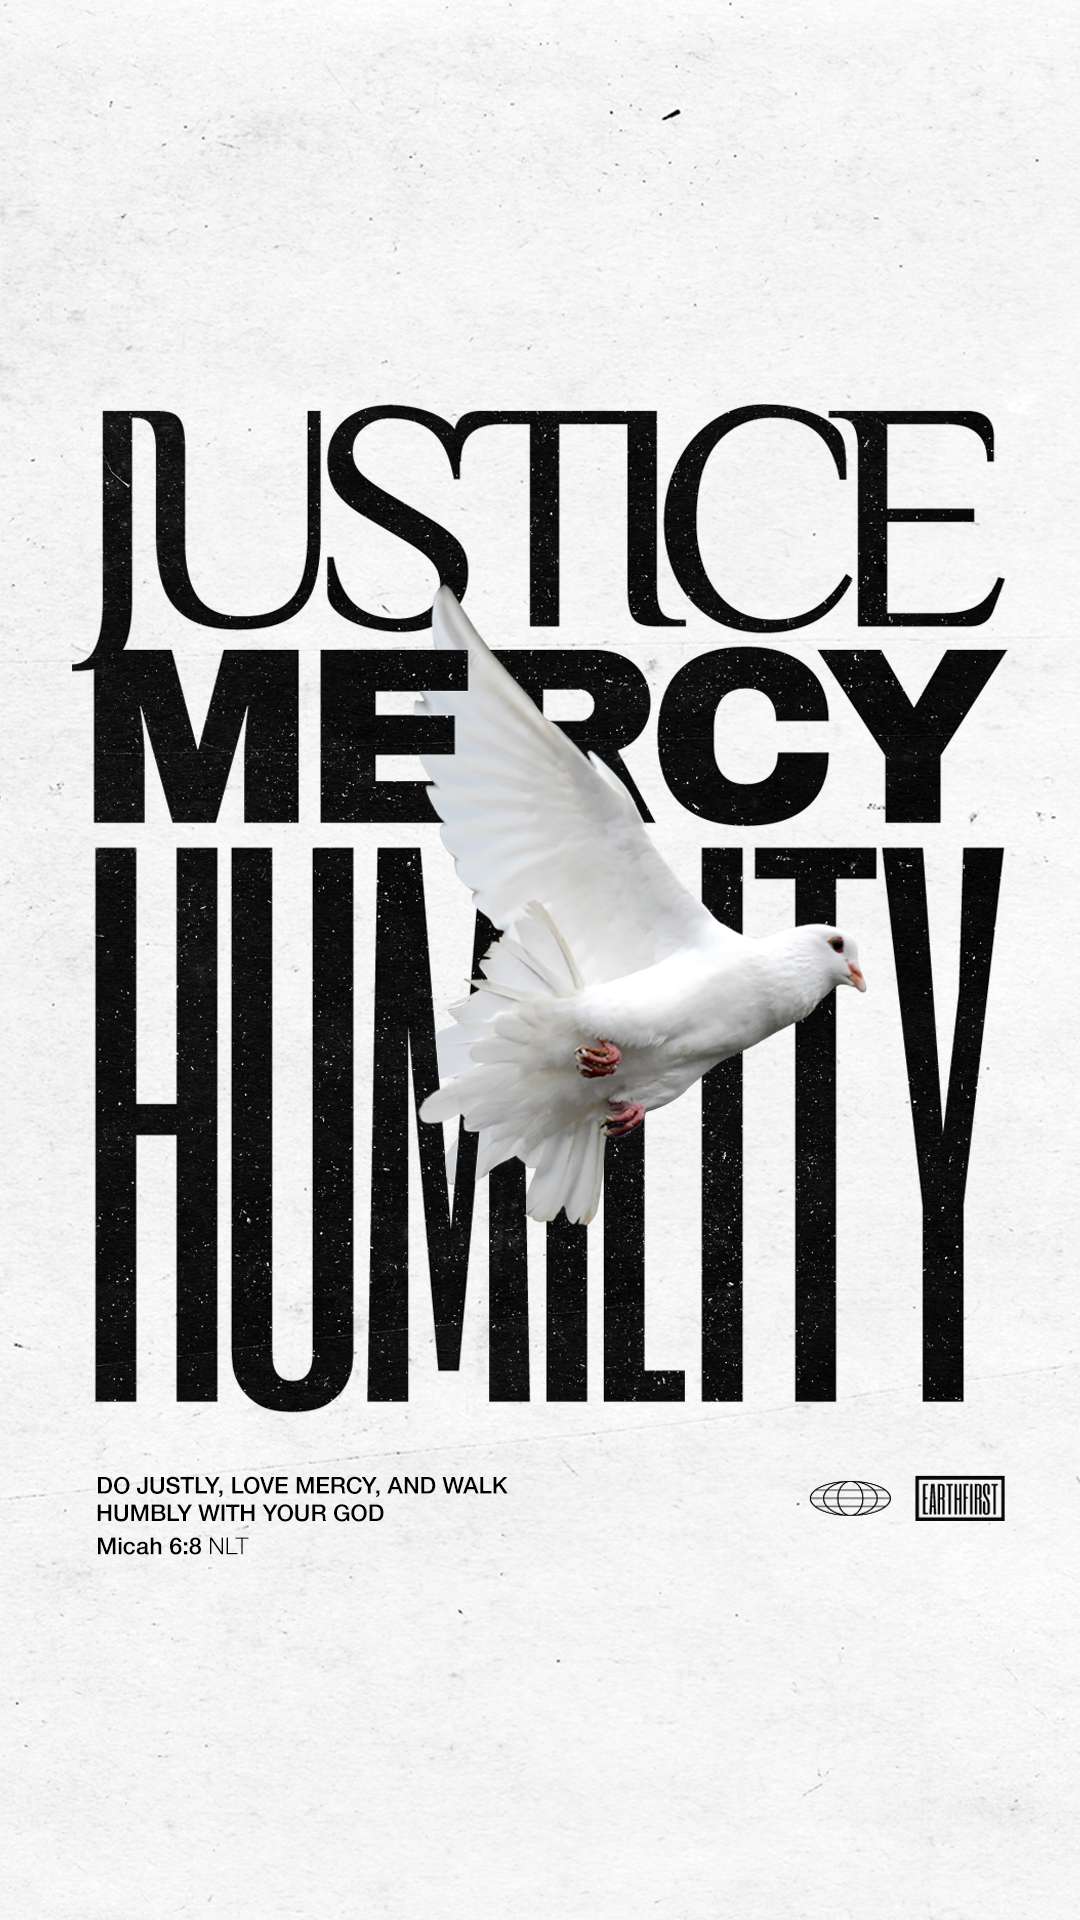 Justice, Mercy, Humility